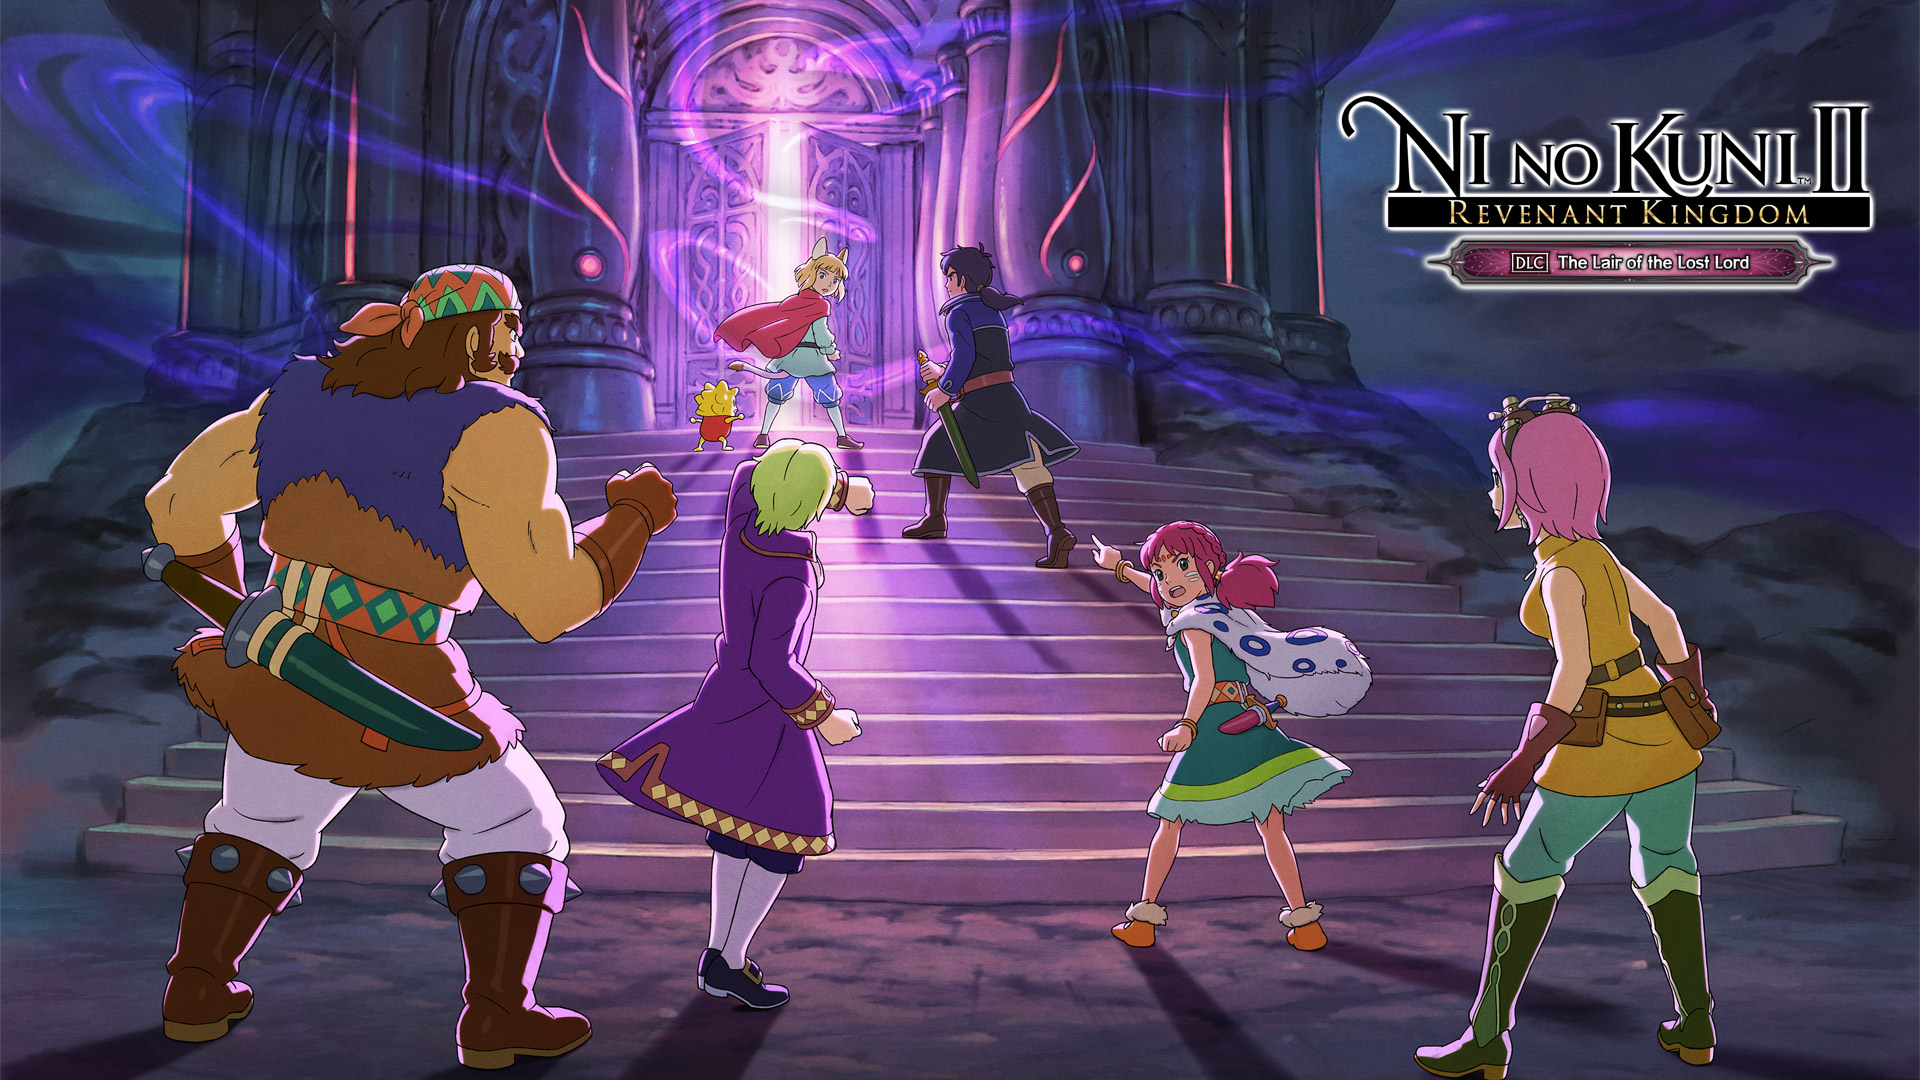 Free Ni No Kuni II: Revenant Kingdom Wallpaper in 1920x1080